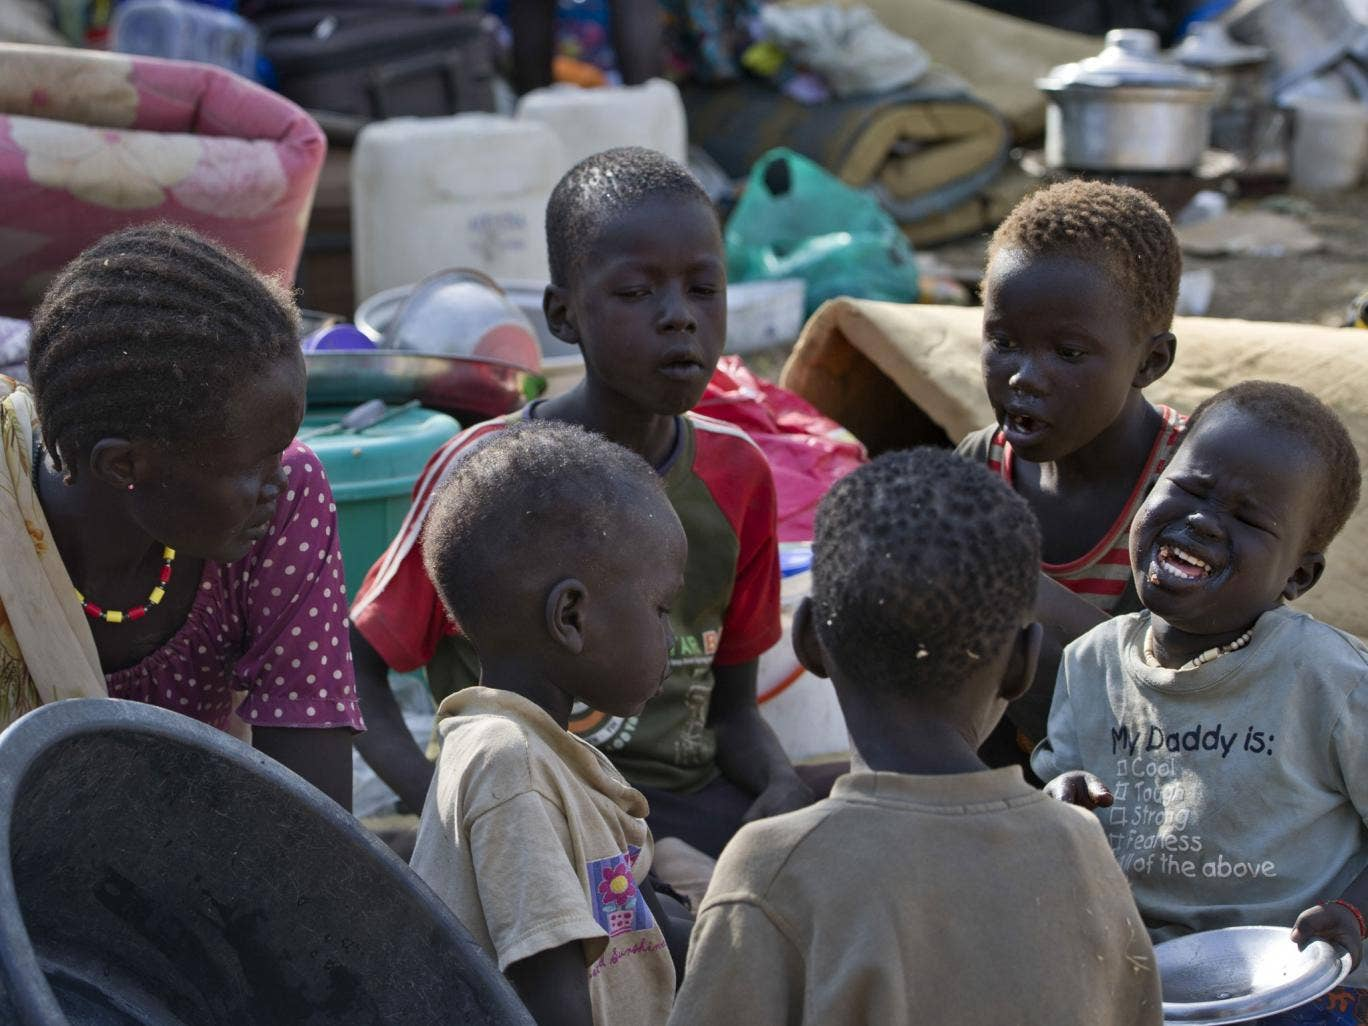 More than 20,000 people have sought refuge at the United Nations mission in Juba